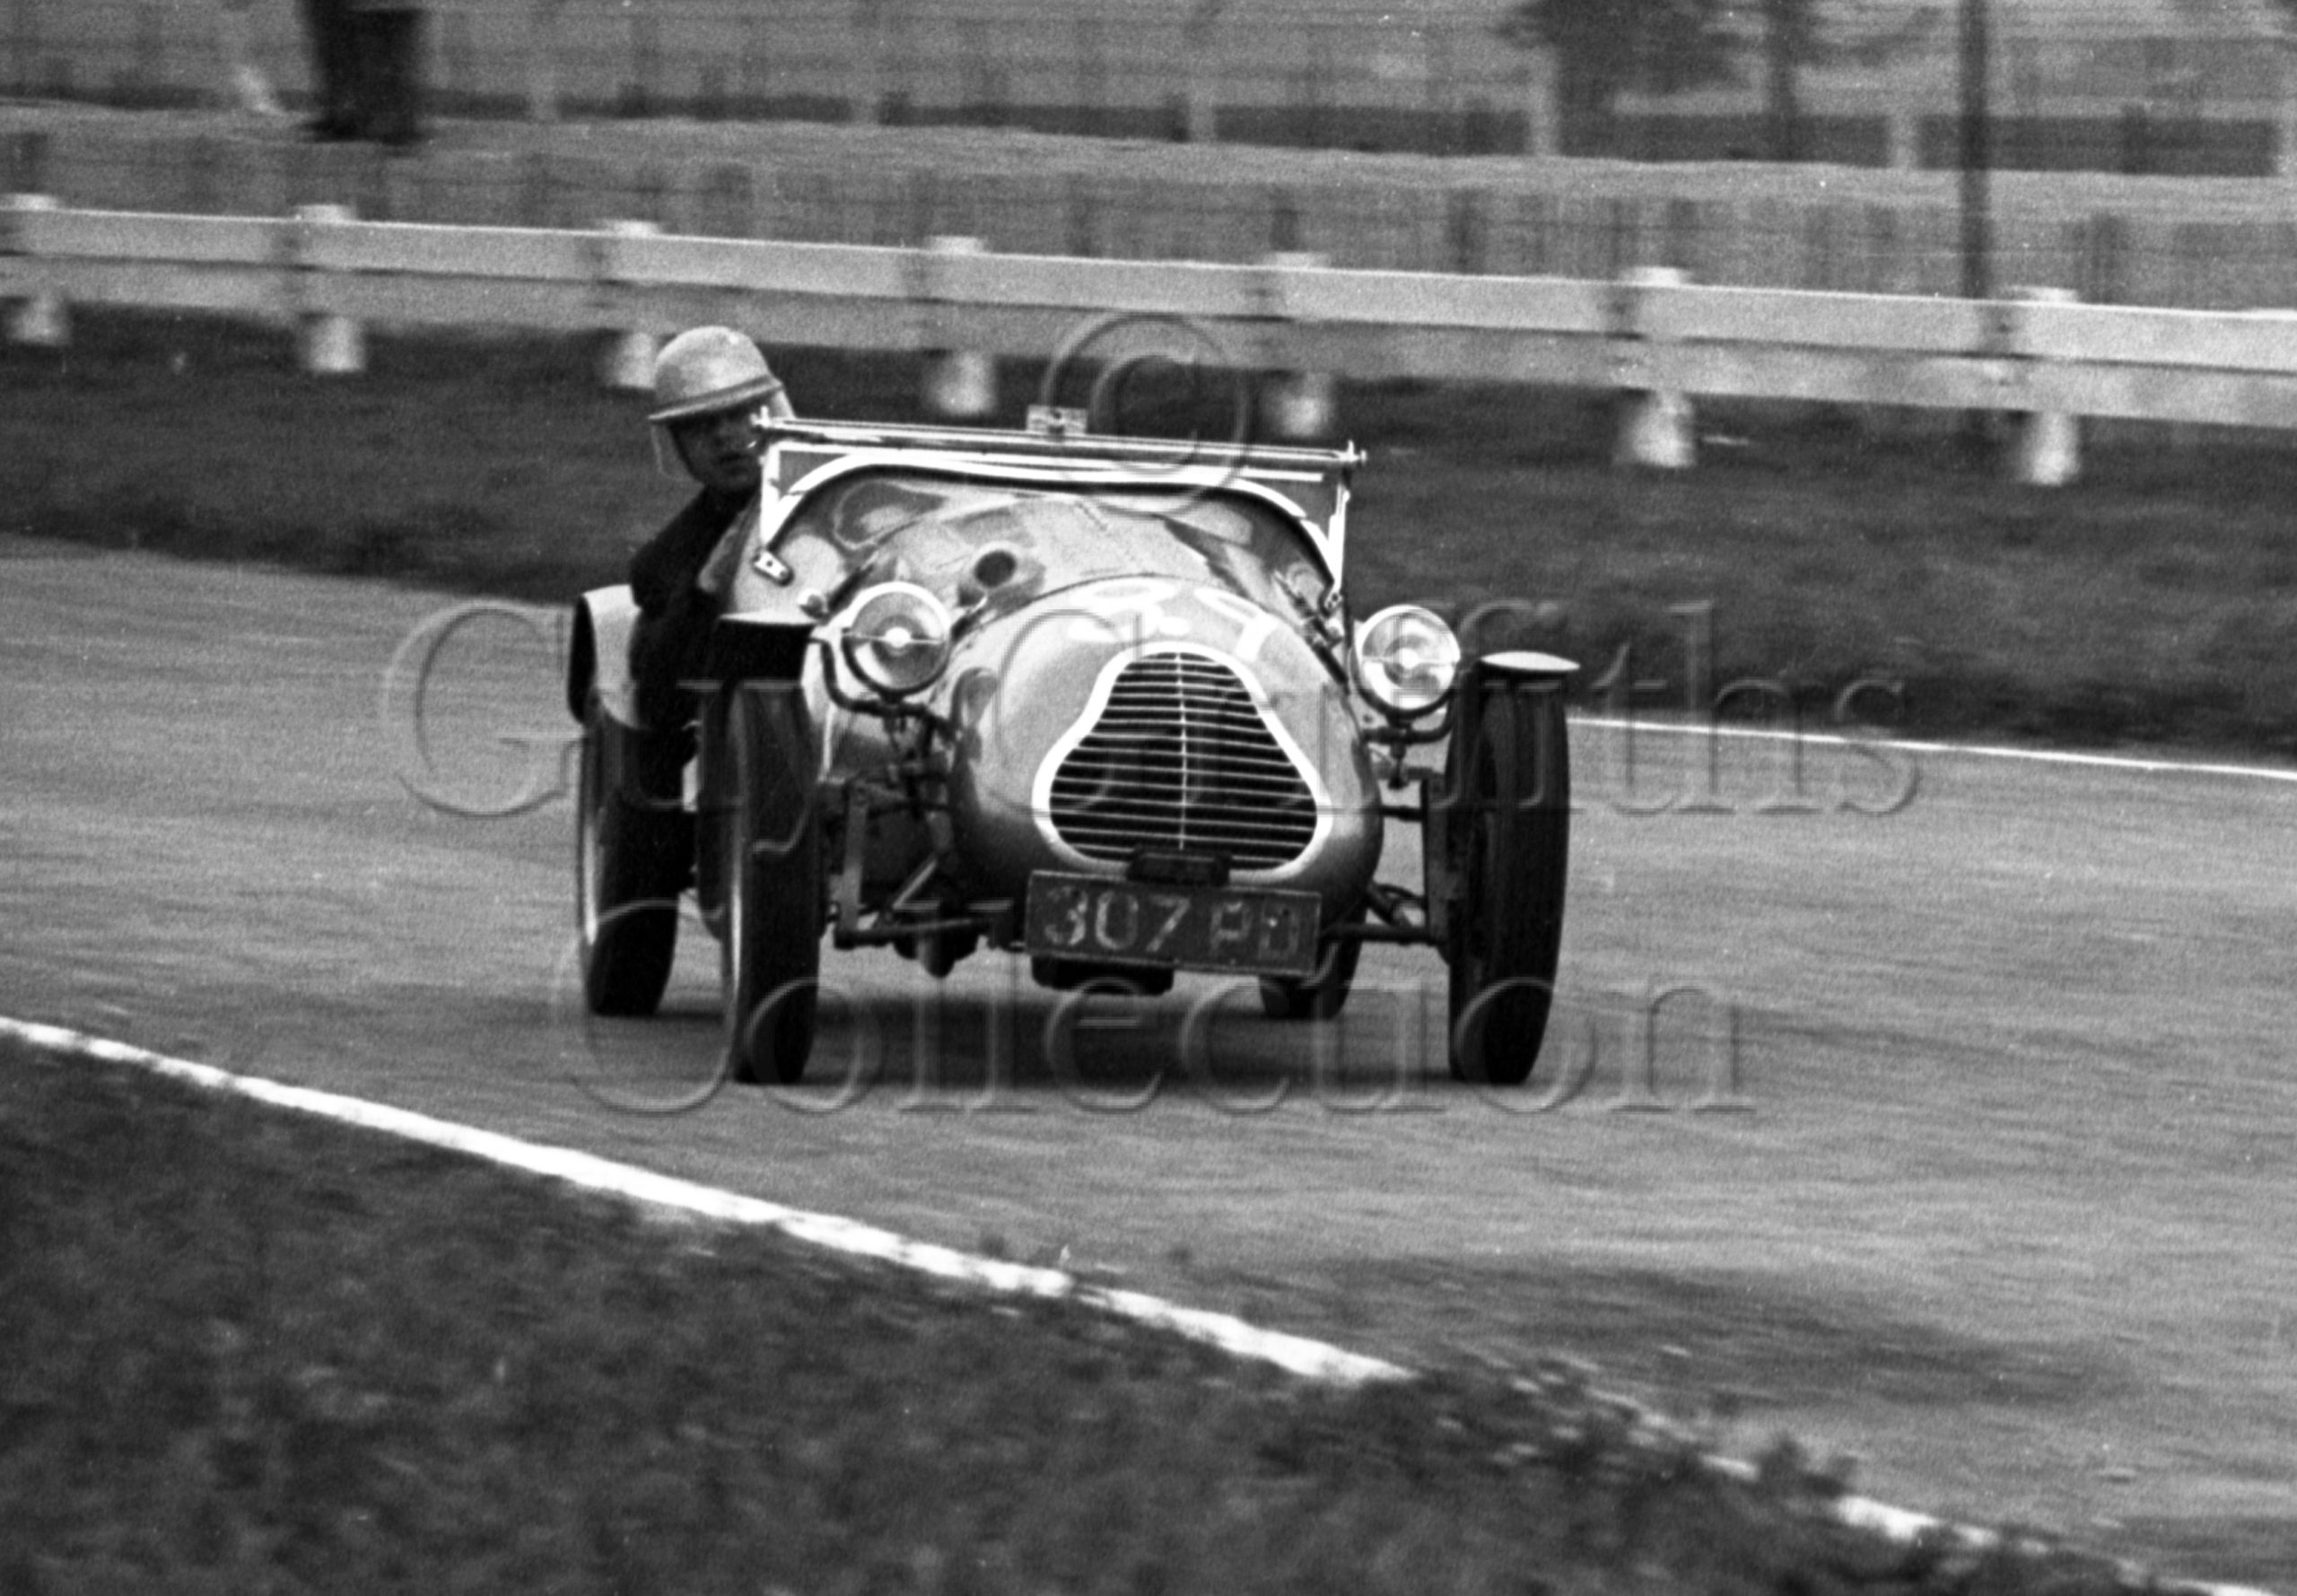 29-286–J-Cooper–Cooper–Goodwood–06-05-1950.jpg - Guy Griffiths Collection